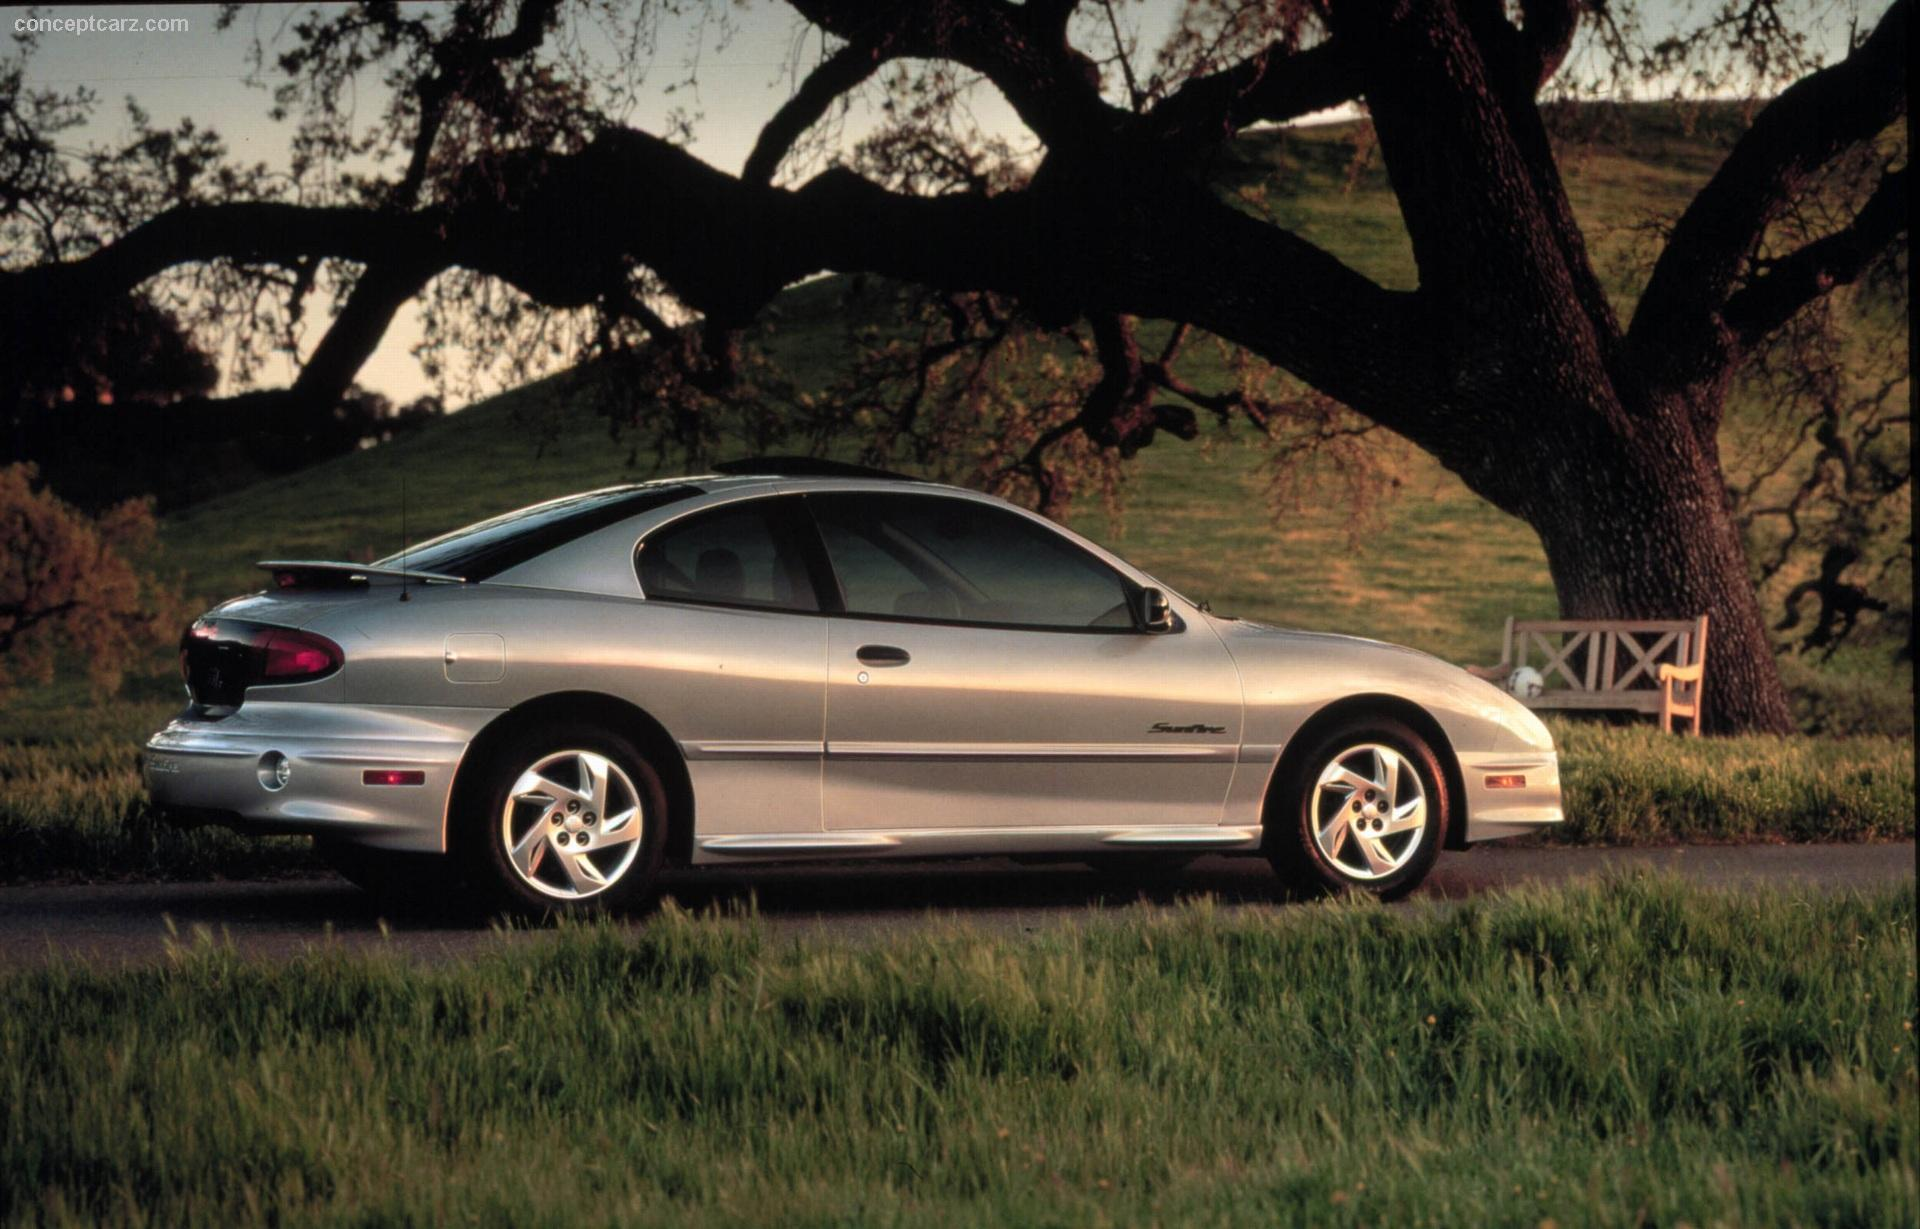 Pontiac Sunfire Manu Hr on 2003 Dodge Truck